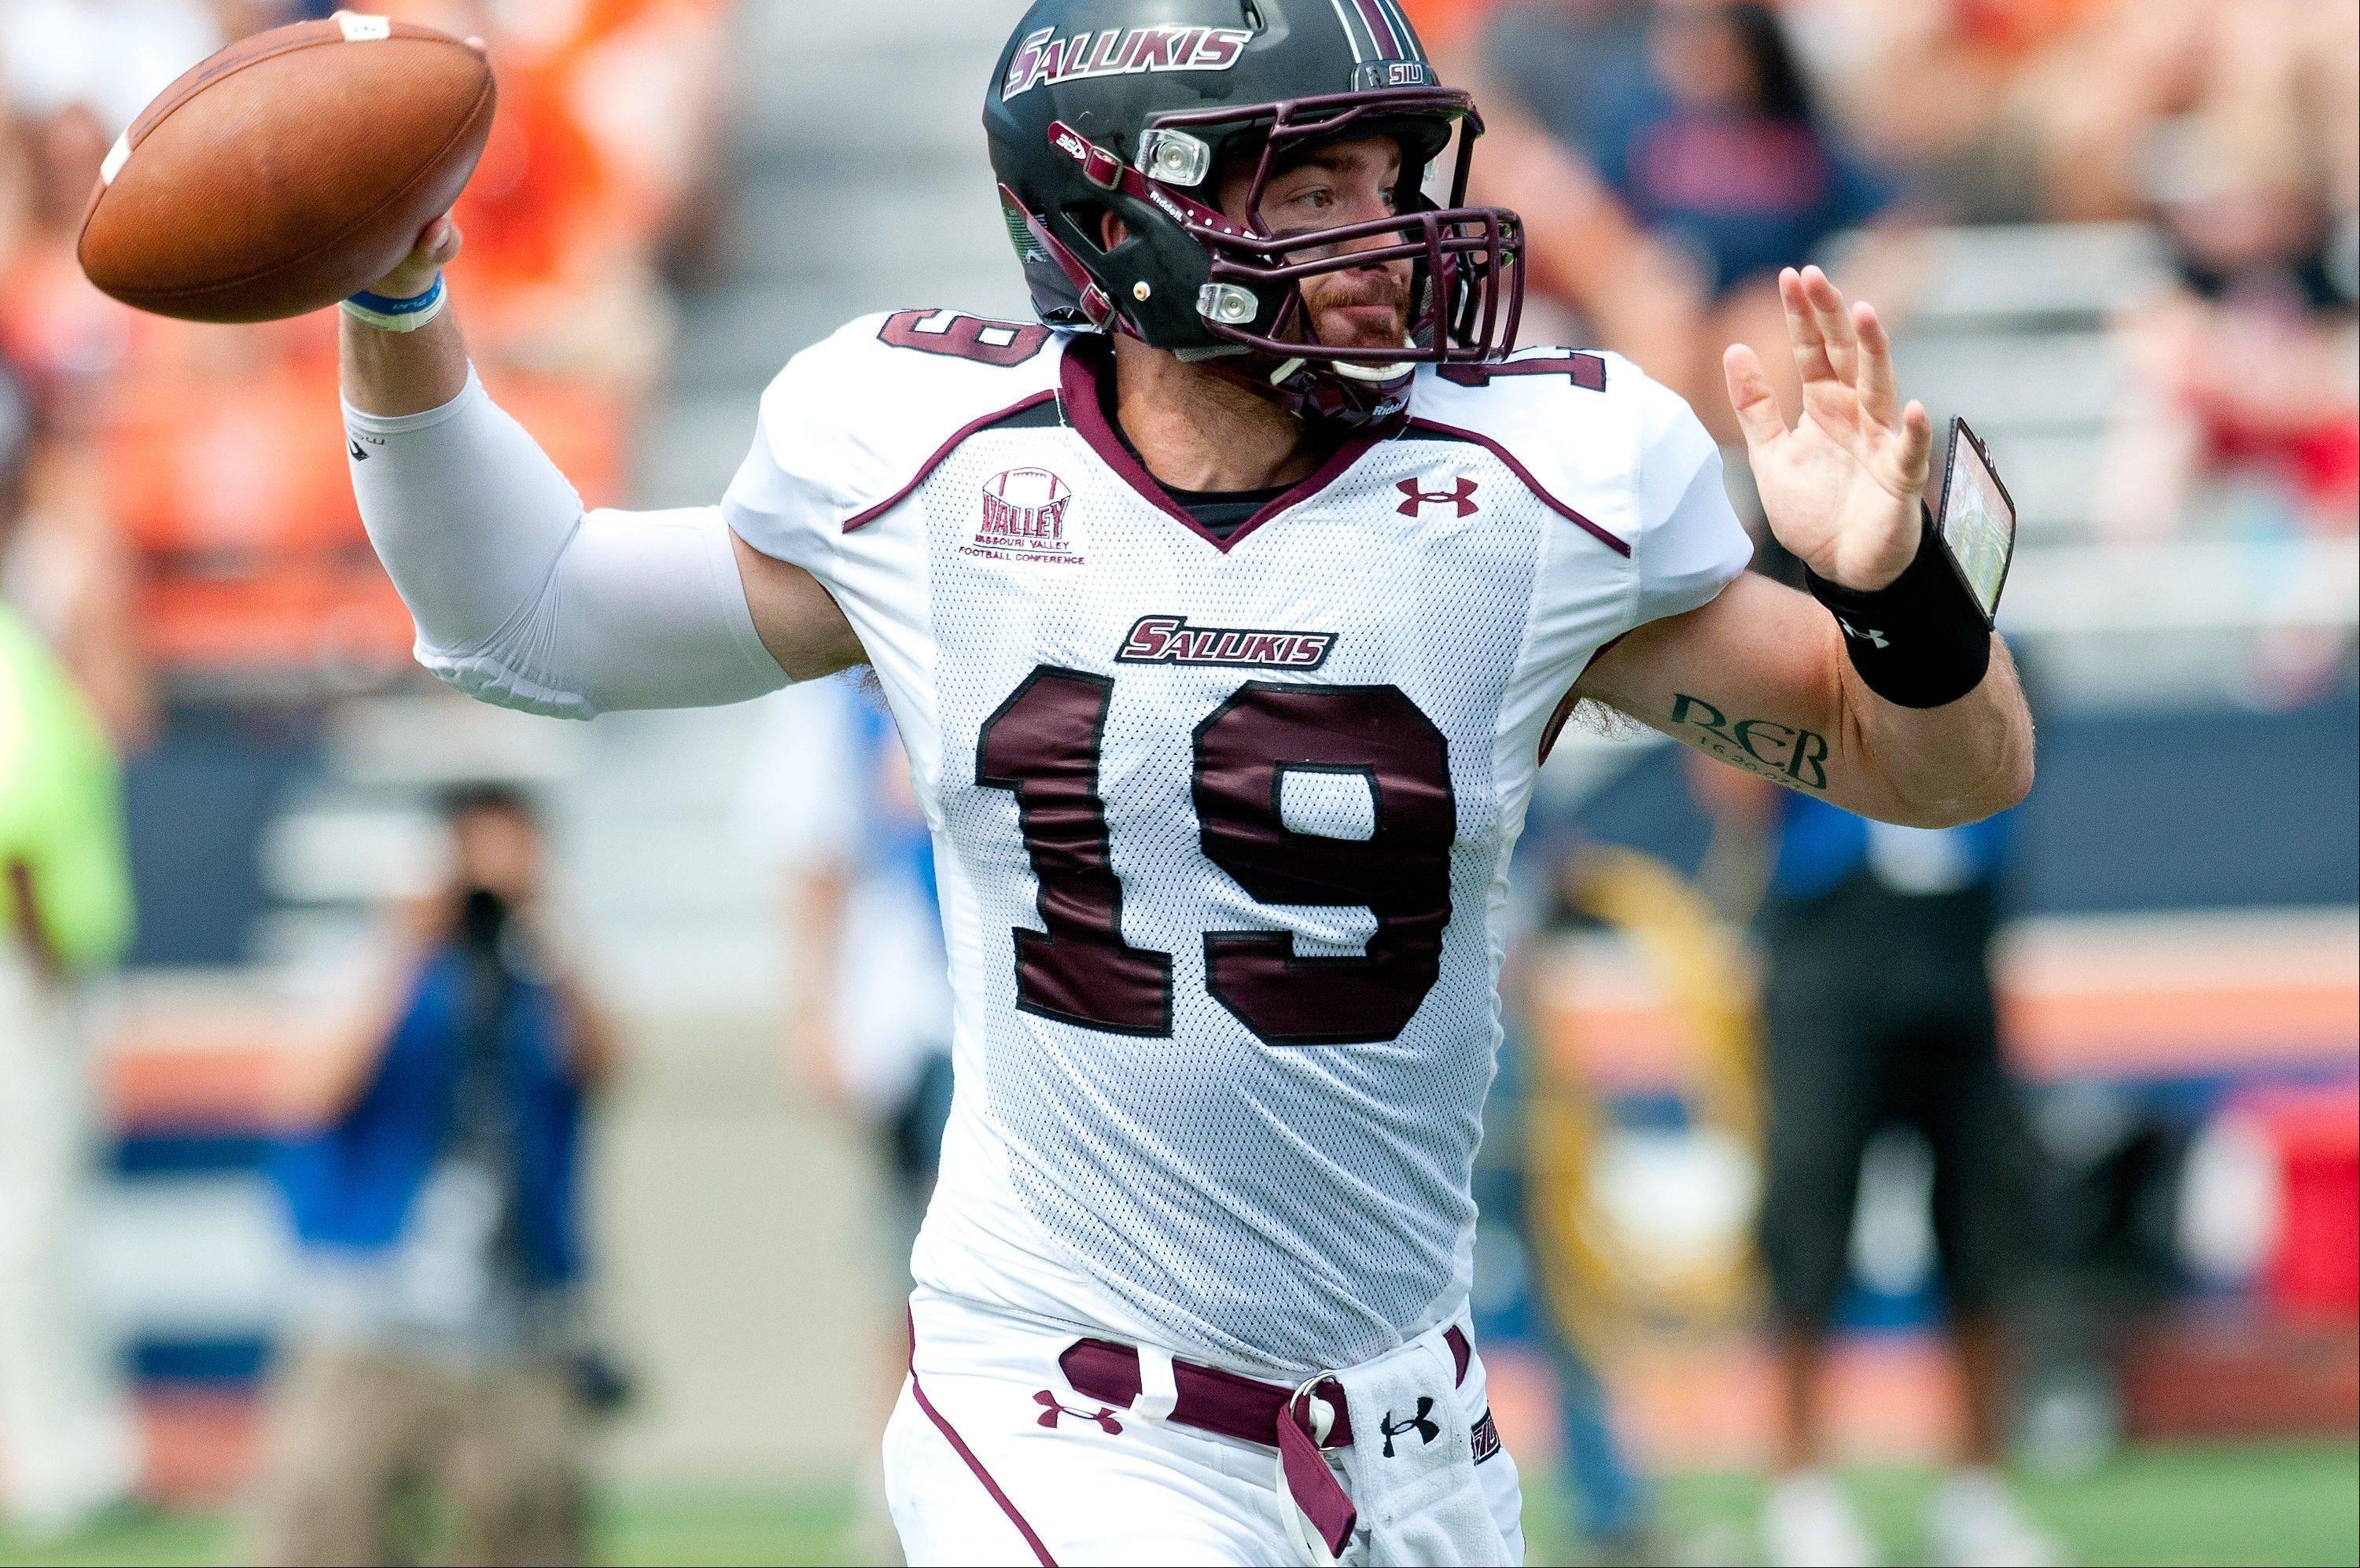 Southern Illinois quarterback Kory Faulkner (19) throws a pass against Illinois during the first half of an NCAA college football game at Memorial Stadium in Champaign.